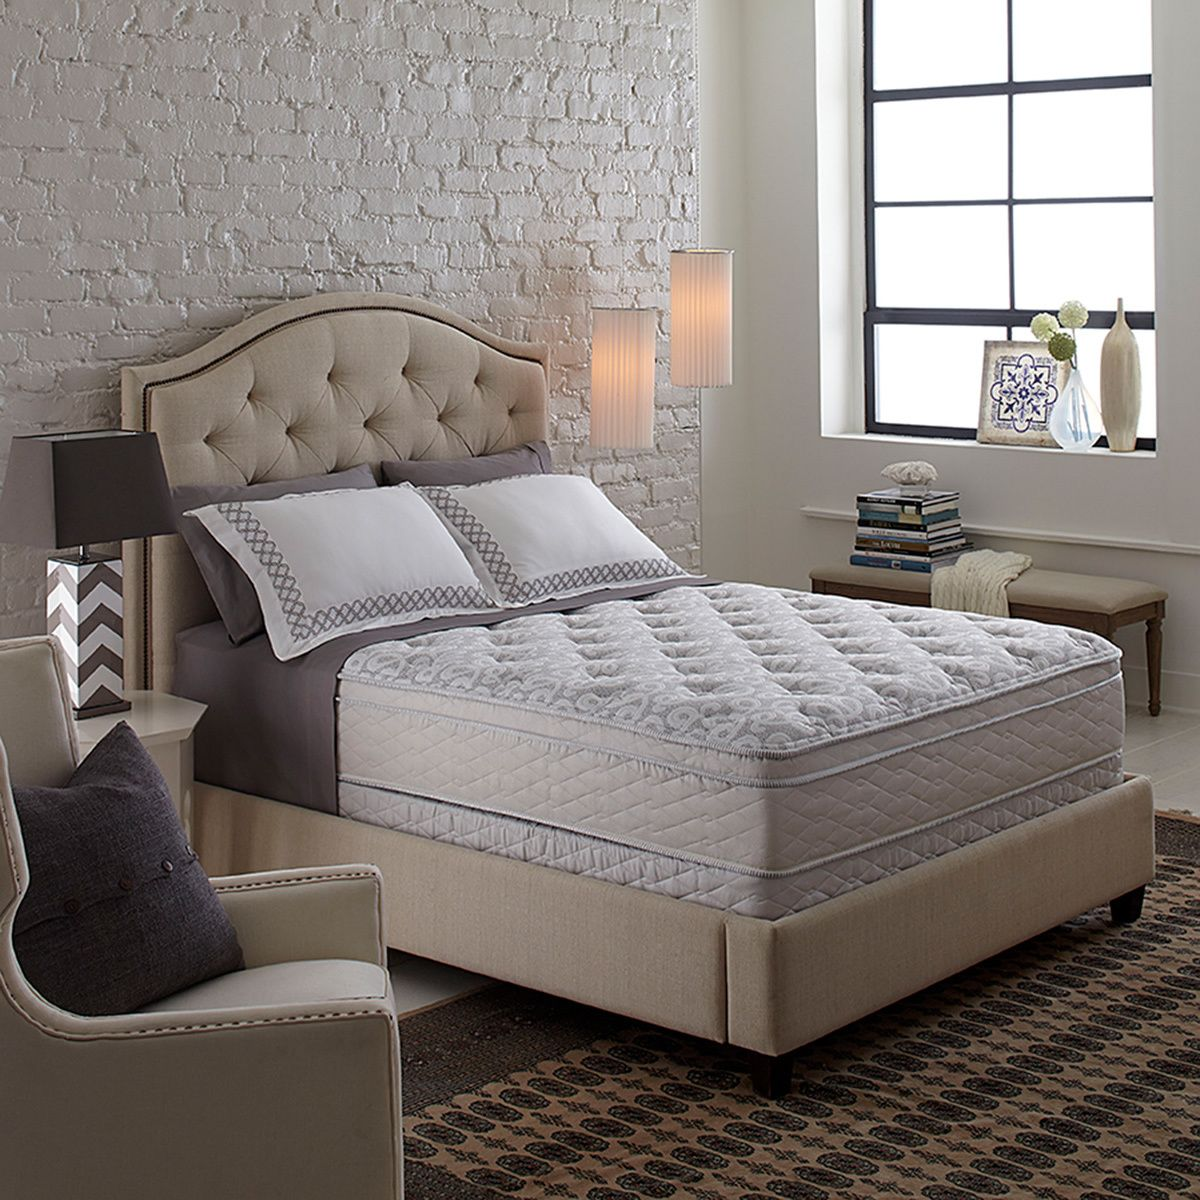 mattress topper size pad queen excellent top very concept for fluffy styles and files pillow best